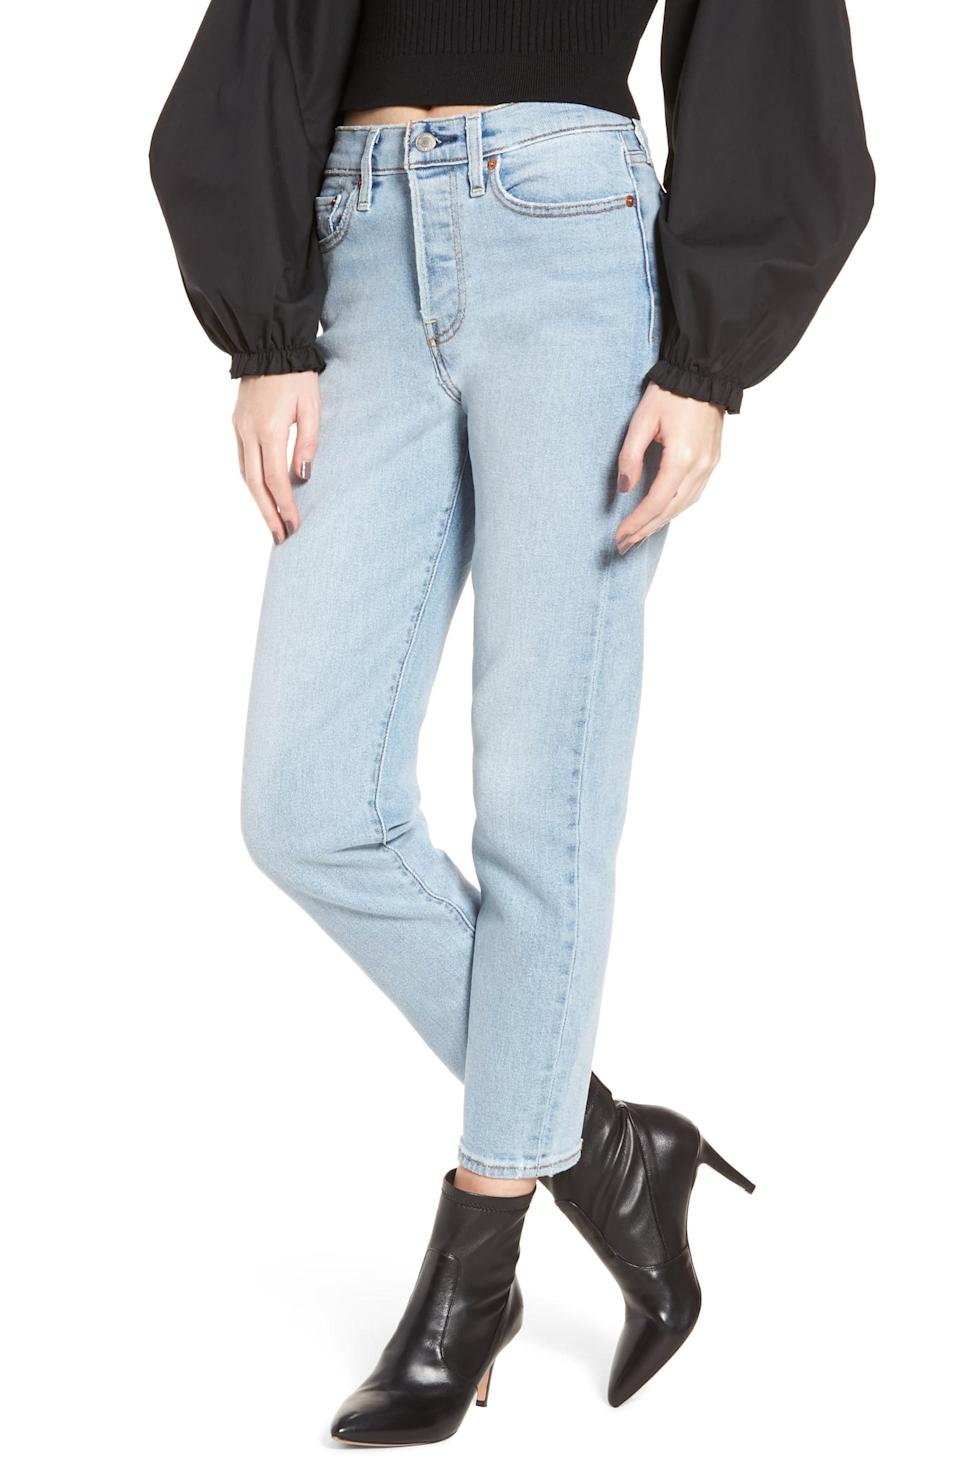 """<strong><h3><a href=""""https://shop.nordstrom.com/s/levis-wedgie-icon-fit-high-waist-crop-jeans-bauhaus-blues/4838364/full?origin=coordinating-4838364-0-1-PDP_1.PDP_1_DEFAULT-recbot-also_viewed&recs_placement=PDP_1.PDP_1_DEFAULT&recs_strategy=also_viewed&recs_source=recbot&recs_page_type=product&recs_seed=5279188"""" rel=""""nofollow noopener"""" target=""""_blank"""" data-ylk=""""slk:Levi's Wedgie Jeans"""" class=""""link rapid-noclick-resp"""">Levi's Wedgie Jeans</a></h3></strong><a href=""""https://www.instagram.com/patsyadaum/https://www.instagram.com/patsyadaum/"""" rel=""""nofollow noopener"""" target=""""_blank"""" data-ylk=""""slk:Patsy Daum, 16"""" class=""""link rapid-noclick-resp""""><strong>Patsy Daum, 16</strong></a><br>Although all pairs of denim may look similar from afar, they all have distinct features that make them stand out. I think we can all agree with the idea that searching for the perfect jeans is a struggle, as the definition of perfect means something different for everyone. For me, <a href=""""https://shop.nordstrom.com/s/levis-wedgie-icon-fit-high-waist-crop-jeans-bauhaus-blues/4838364/full?origin=coordinating-4838364-0-1-PDP_1.PDP_1_DEFAULT-recbot-also_viewed&recs_placement=PDP_1.PDP_1_DEFAULT&recs_strategy=also_viewed&recs_source=recbot&recs_page_type=product&recs_seed=5279188"""" rel=""""nofollow noopener"""" target=""""_blank"""" data-ylk=""""slk:this pair"""" class=""""link rapid-noclick-resp"""">this pair</a> is exactly what I am looking for. I love the light wash of the material and the fact they are high waisted is what really makes me love them so much. There is nothing quite like the satisfaction of finding the perfect jeans since denim is such a closet staple. <br><br><strong>Levi's</strong> Wedgie Icon Fit High Waist Crop Jeans, $, available at <a href=""""https://shop.nordstrom.com/s/levis-wedgie-icon-fit-high-waist-crop-jeans-bauhaus-blues/4838364/full?origin=coordinating-4838364-0-1-PDP_1.PDP_1_DEFAULT-recbot-also_viewed&recs_placement=PDP_1.PDP_1_DEFAULT&recs_strategy=also_viewed&recs_source=recbot&recs_page_typ"""